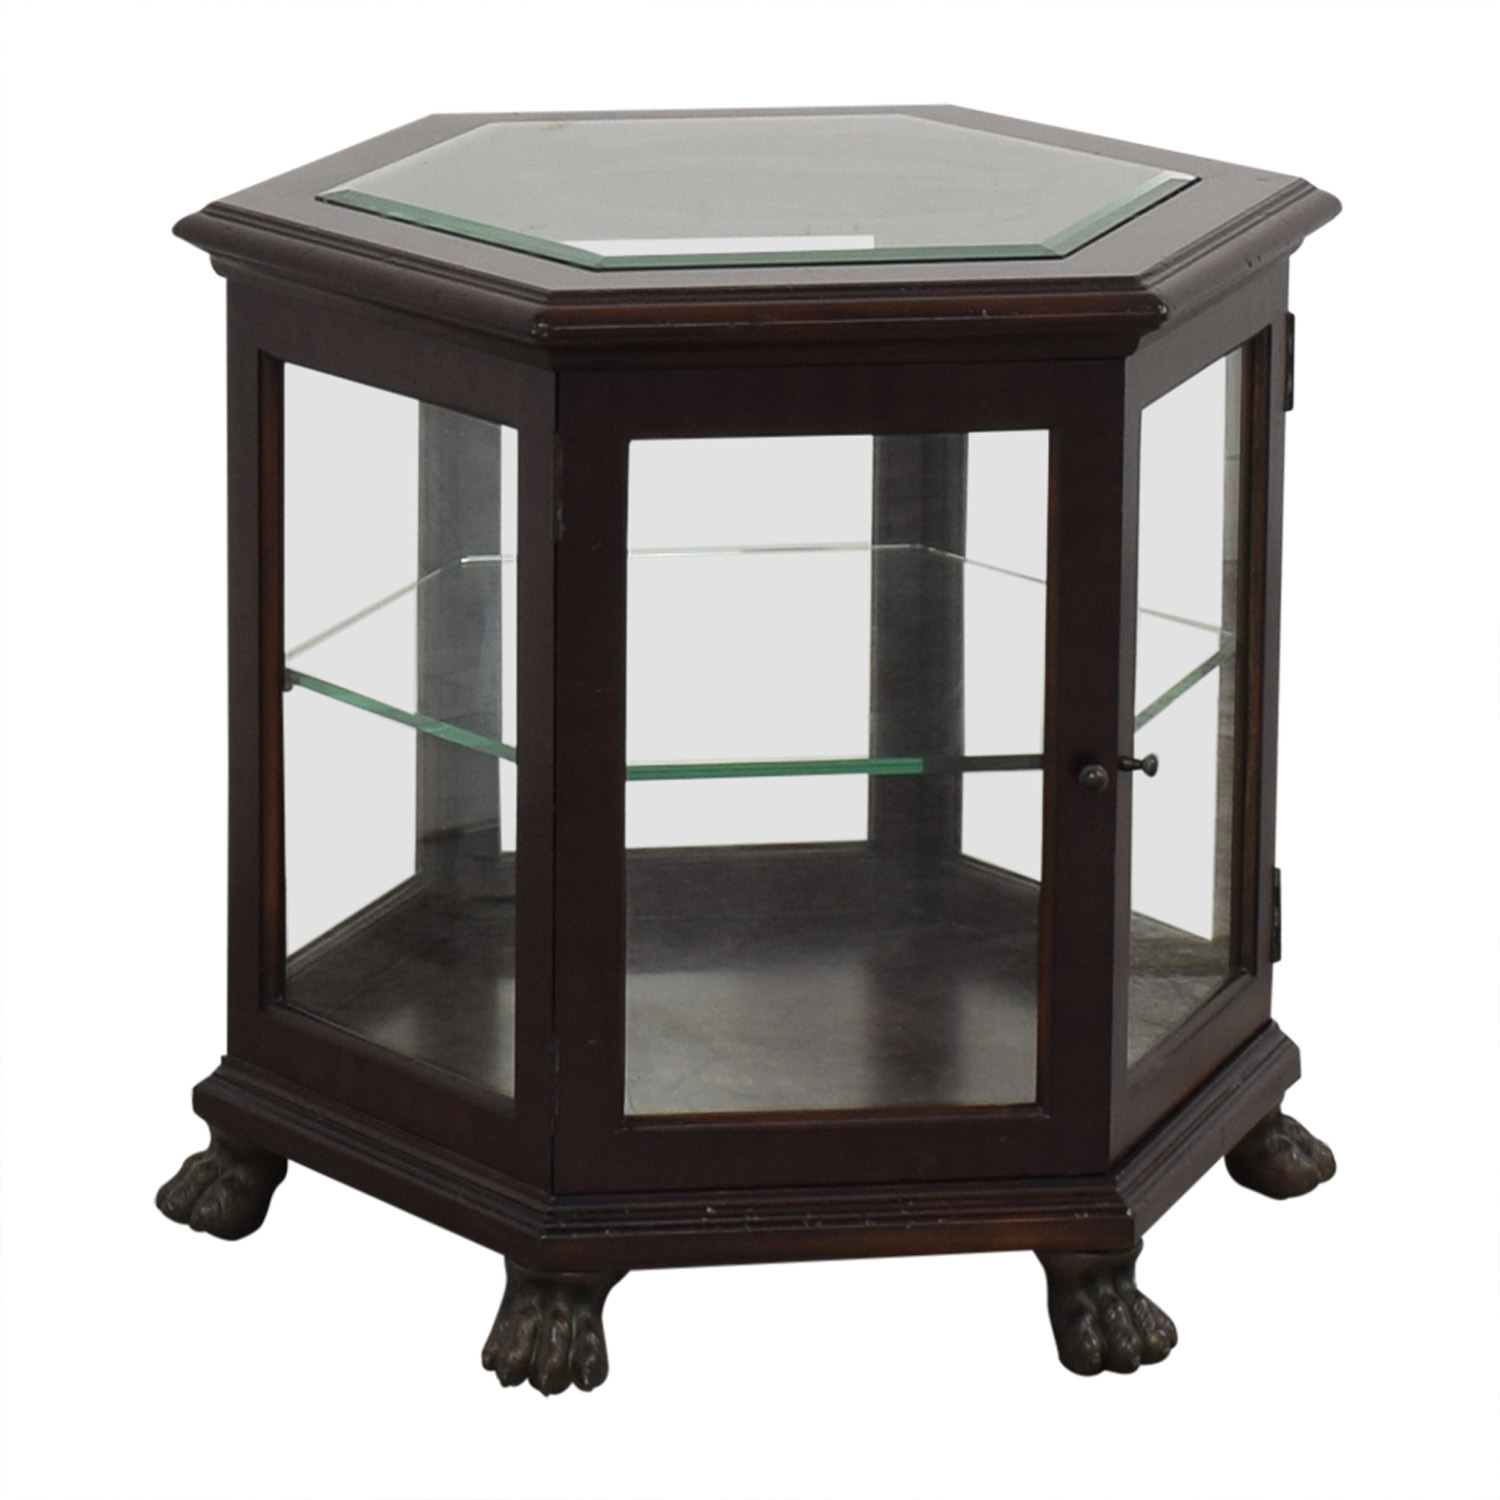 Thomasville Hexagon End Table / End Tables